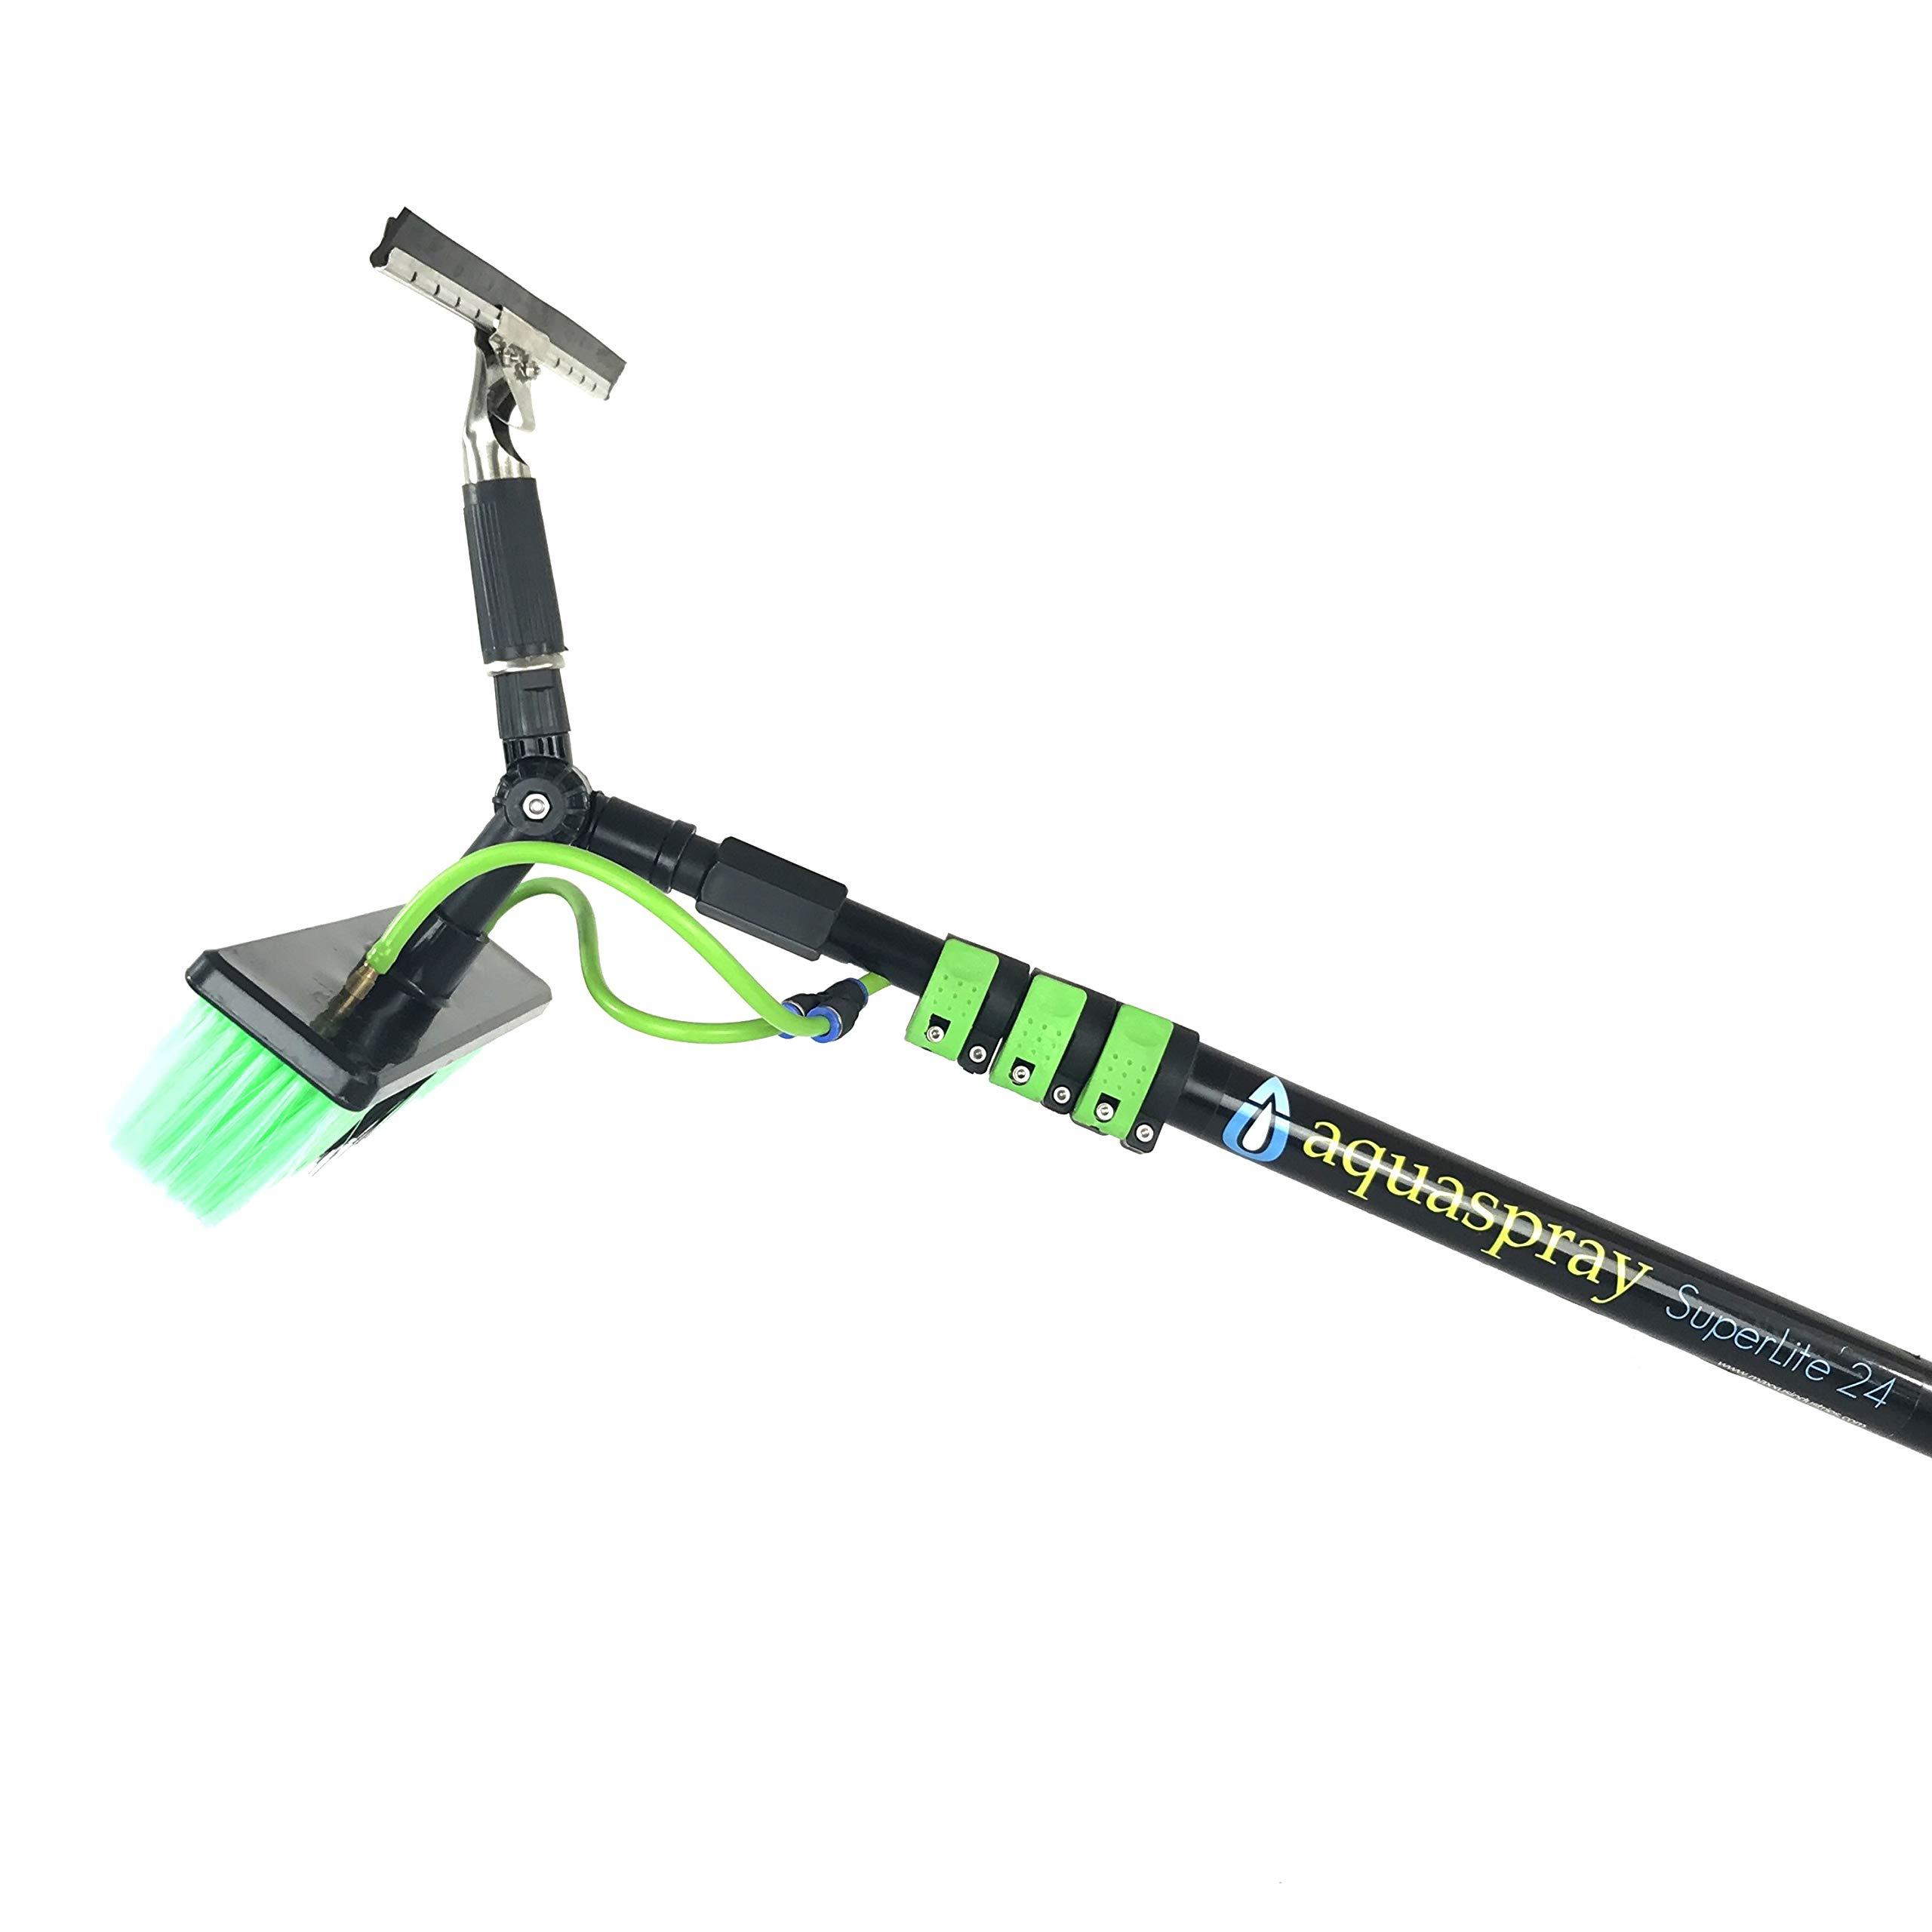 30 ft Water Fed Pole, Window & Solar Panel Cleaning Tool with Brush & Squeegee AquaSpray by EquipMaxx by EquipMaxx AquaSpray (Image #1)